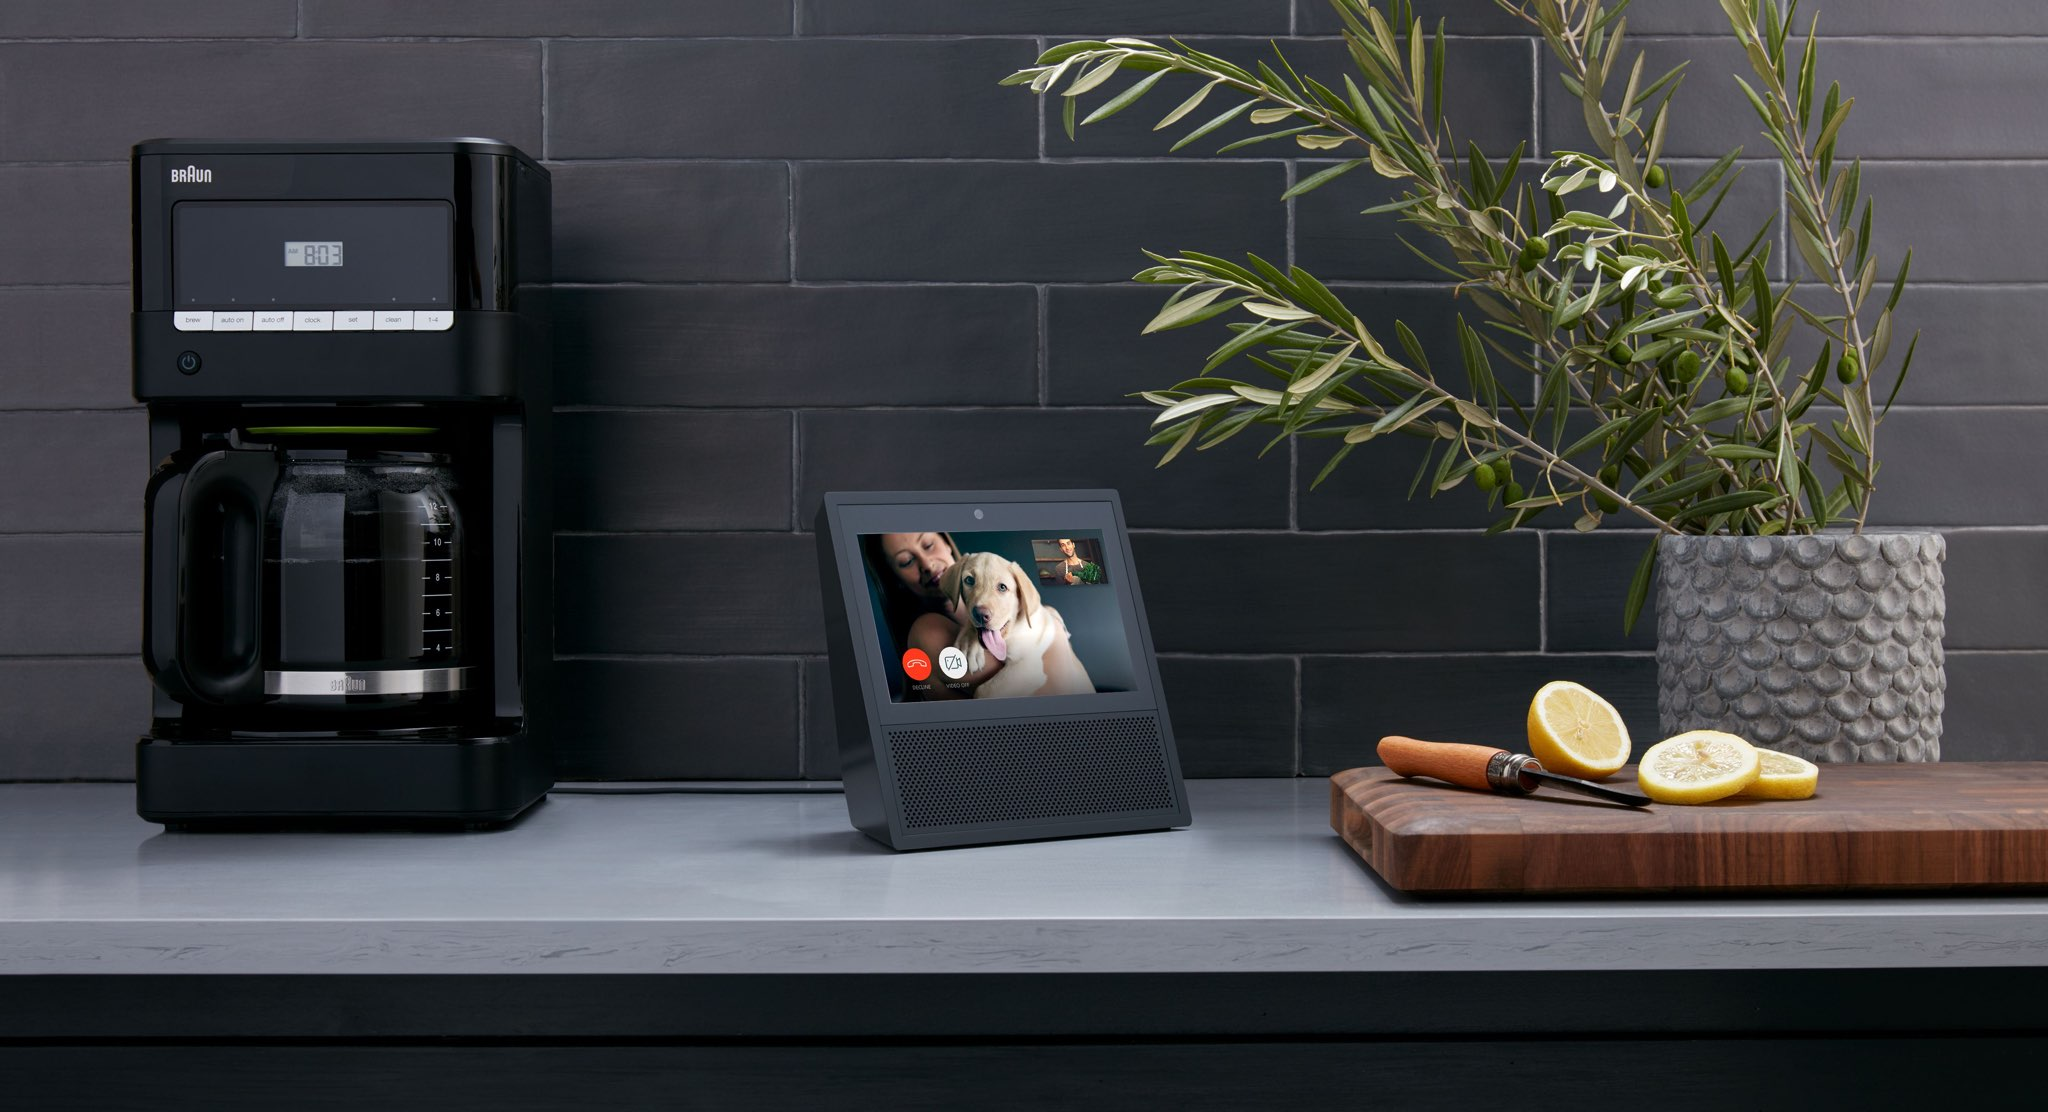 Amazon's Echo Show speaker with a built-in screen